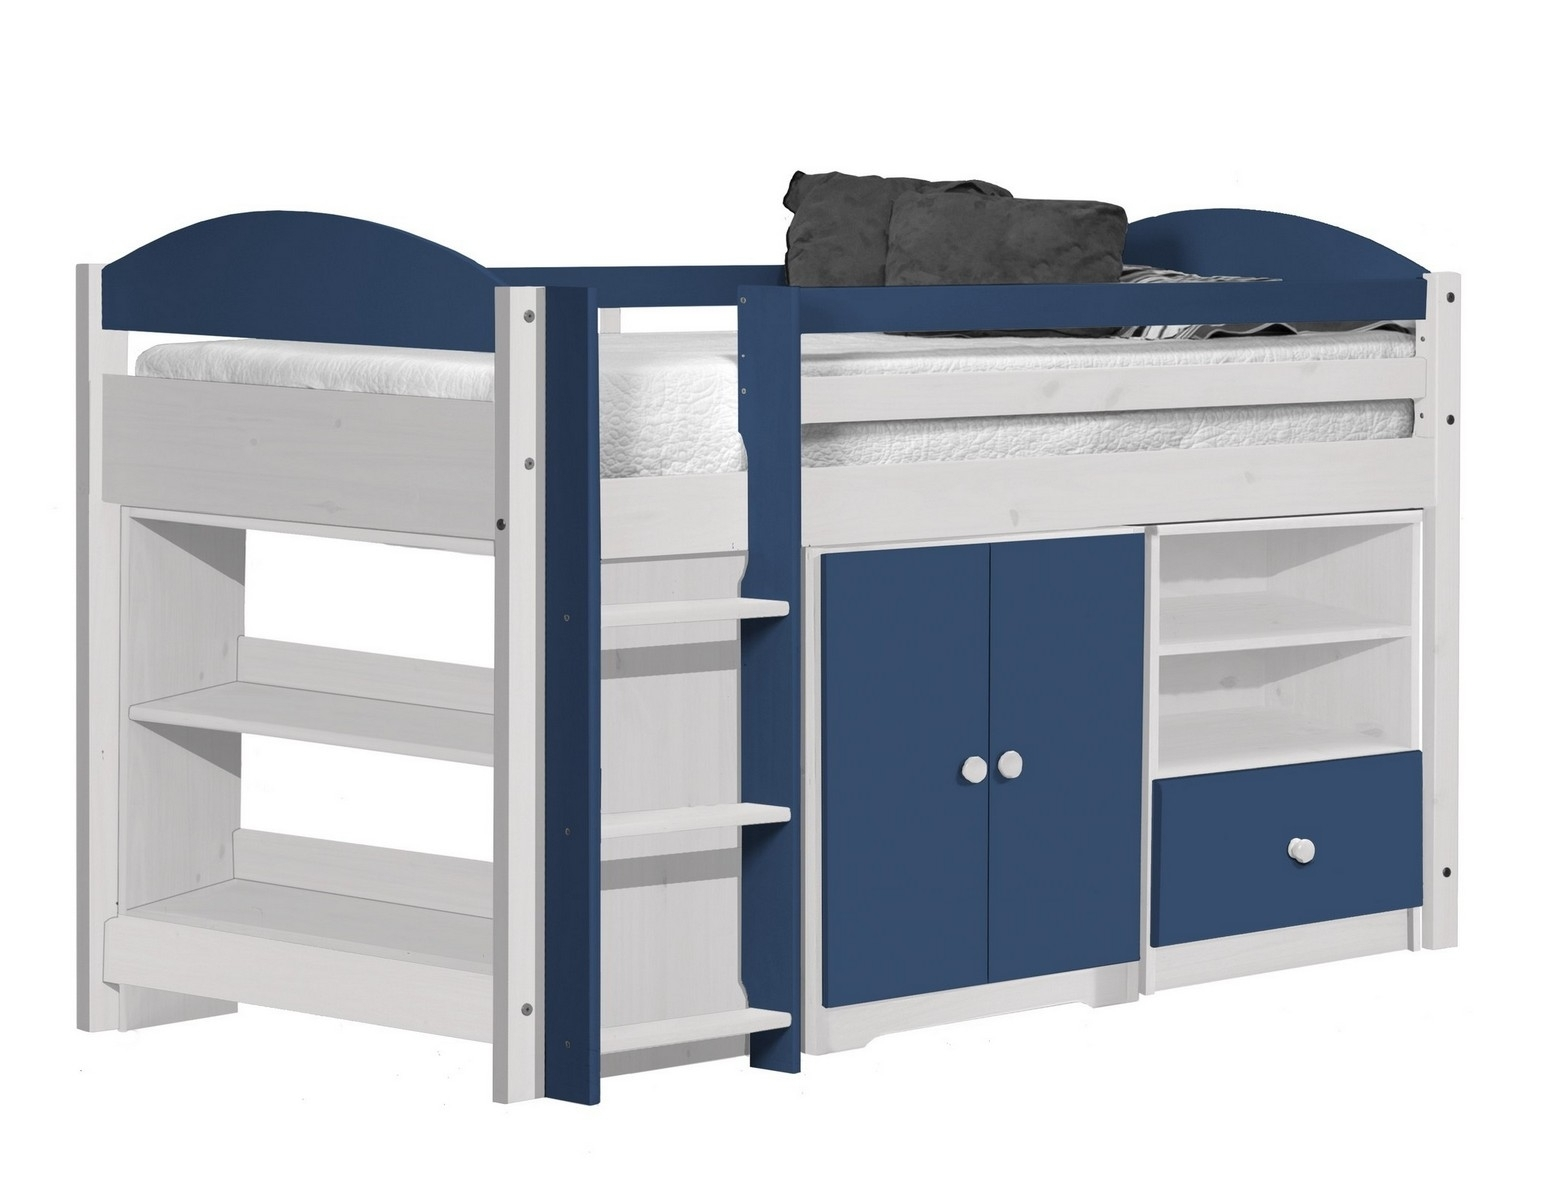 lit combin mi haut bois blanc et bleu aladin. Black Bedroom Furniture Sets. Home Design Ideas